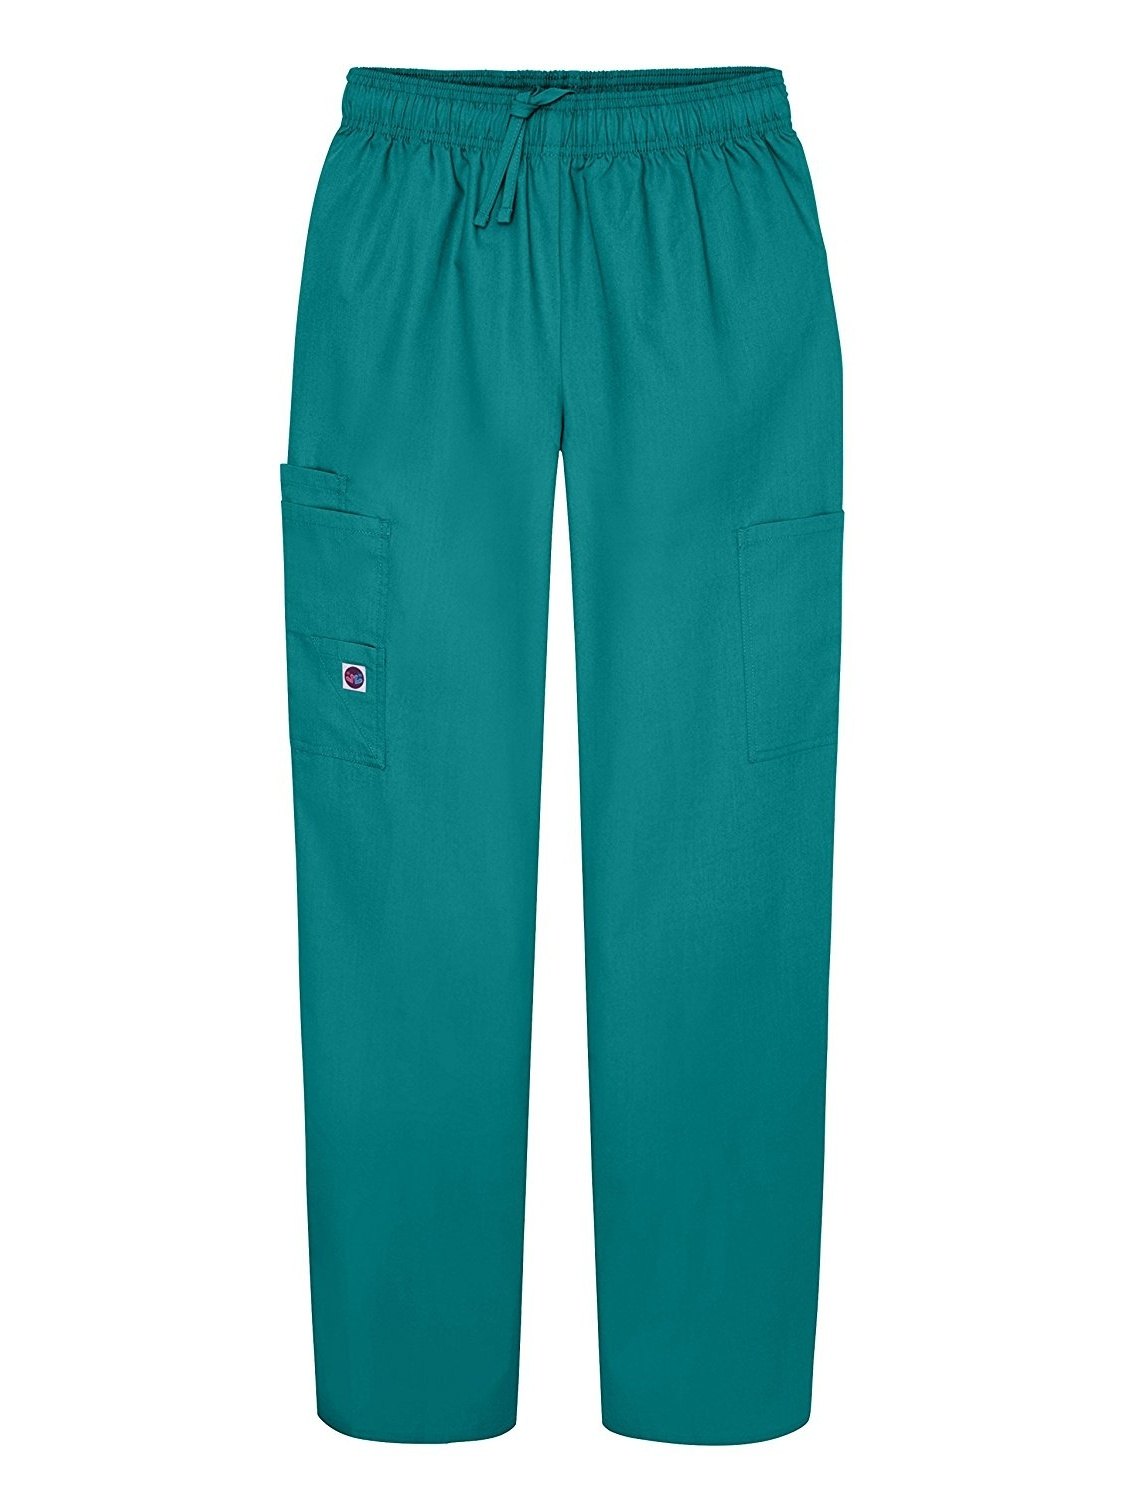 Sivvan Womens Scrubs Drawstring Cargo Pants (Available in 12 Colors)